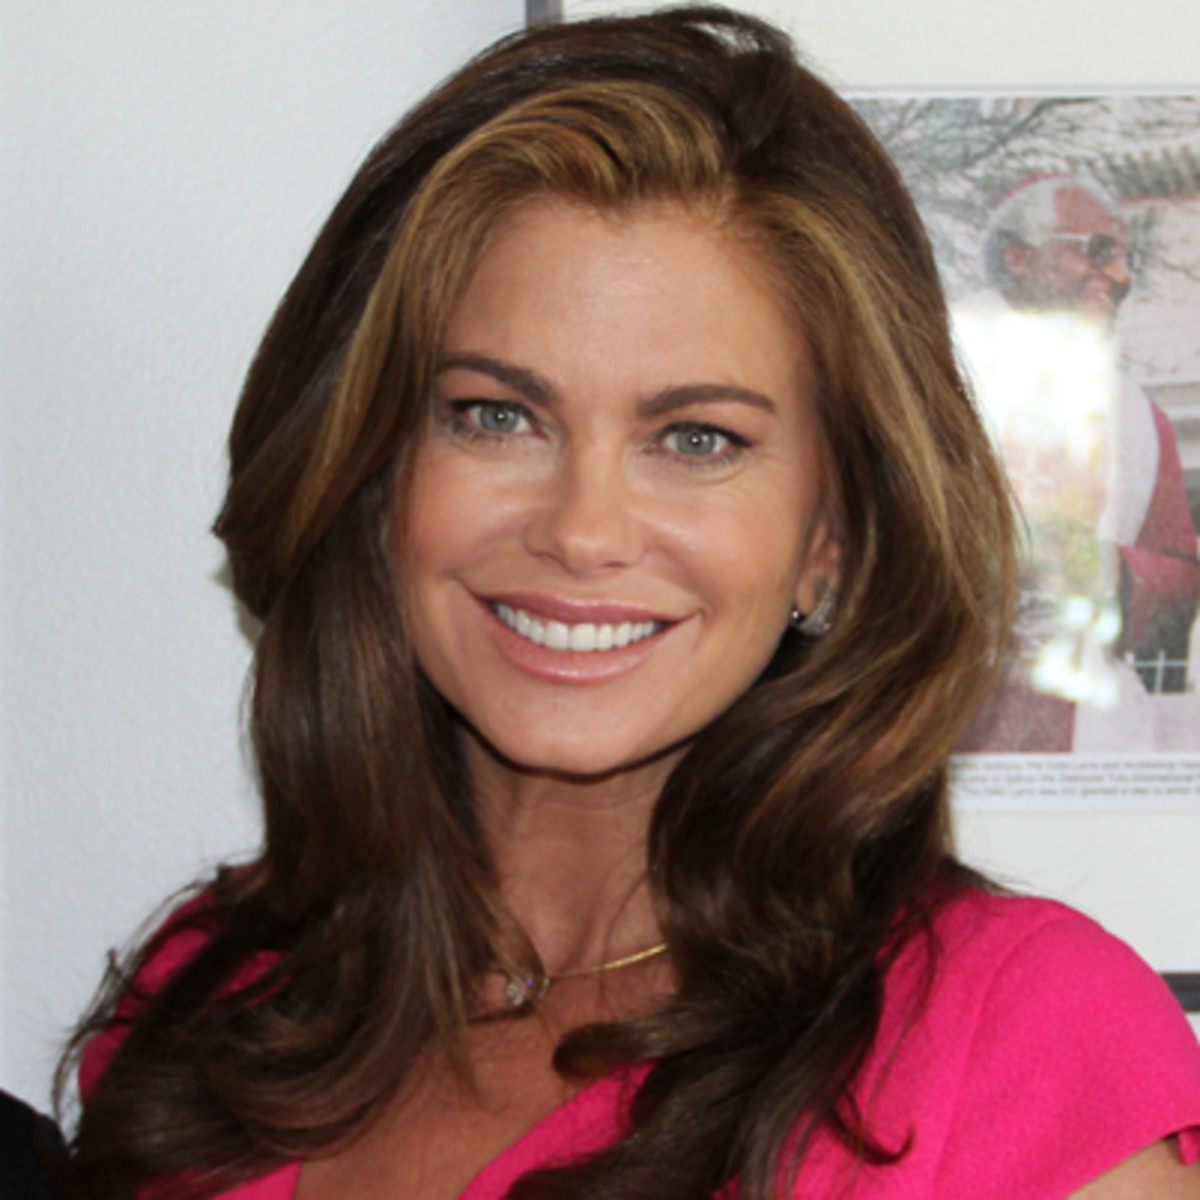 Kathy Ireland nude (88 photos), young Porno, Instagram, bra 2018